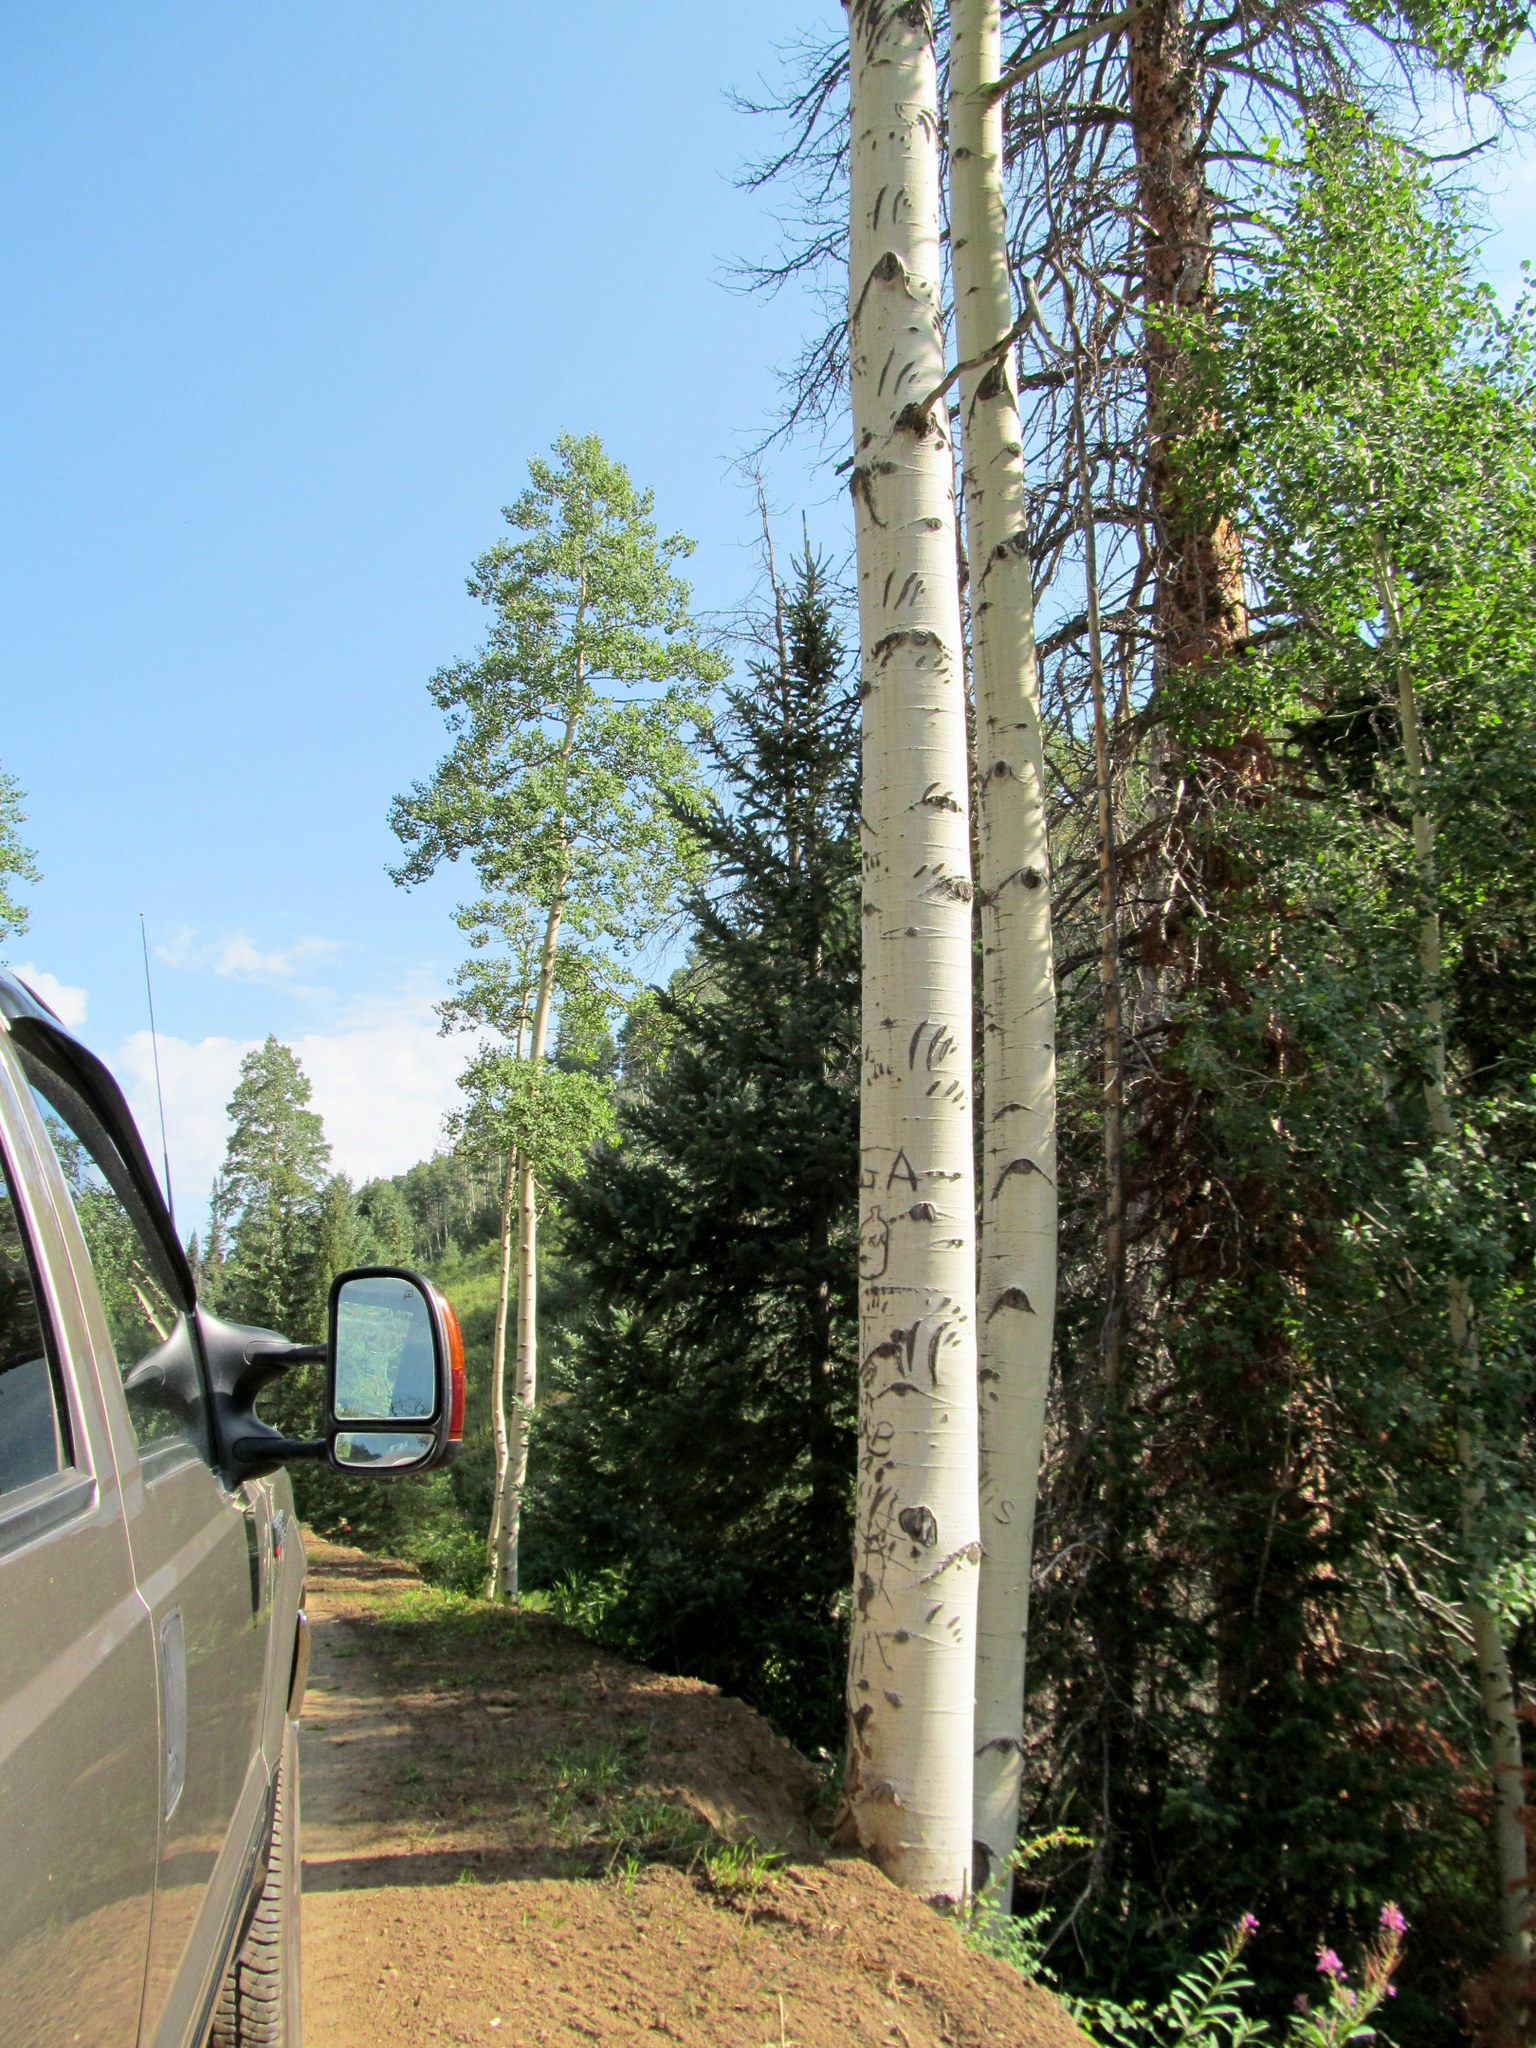 Photo: Bear claw marks going 20 feet up an aspen tree